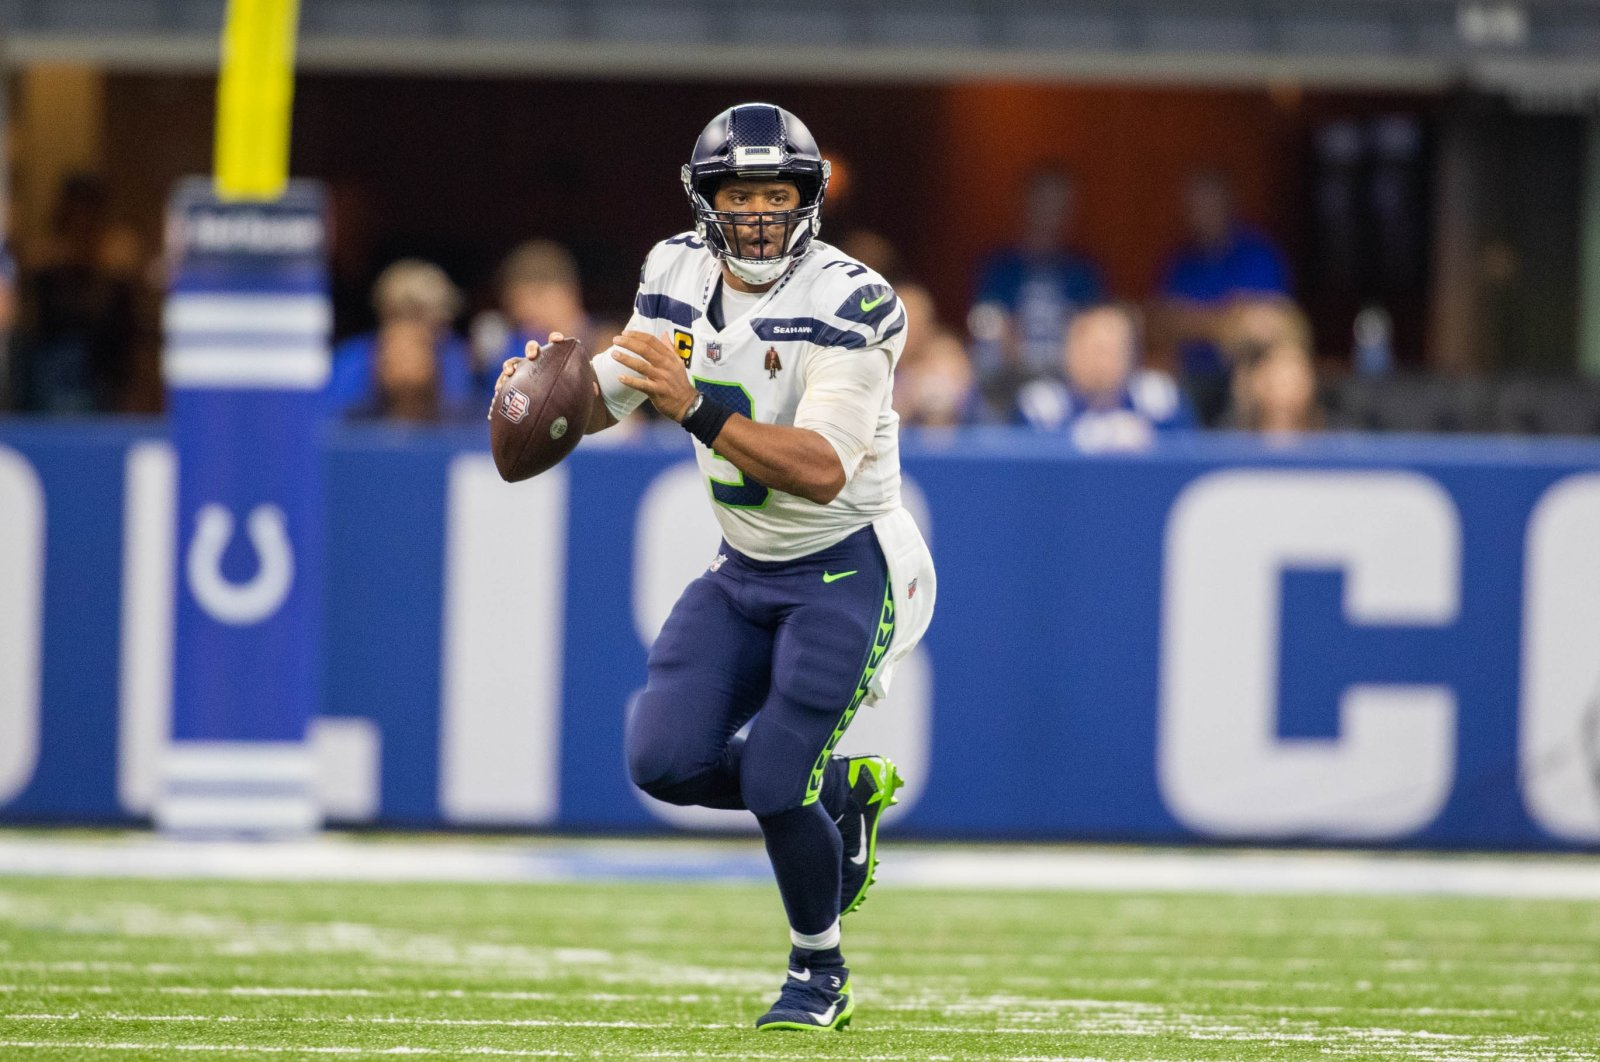 Seattle Seahawks quarterback Russell Wilson (3) looks to pass the ball in the second half against the Indianapolis Colts at Lucas Oil Stadium, Indianapolis, Indiana, U.S., Sept. 12, 2021. (Trevor Ruszkowski-USA TODAY Sports via REUTERS)